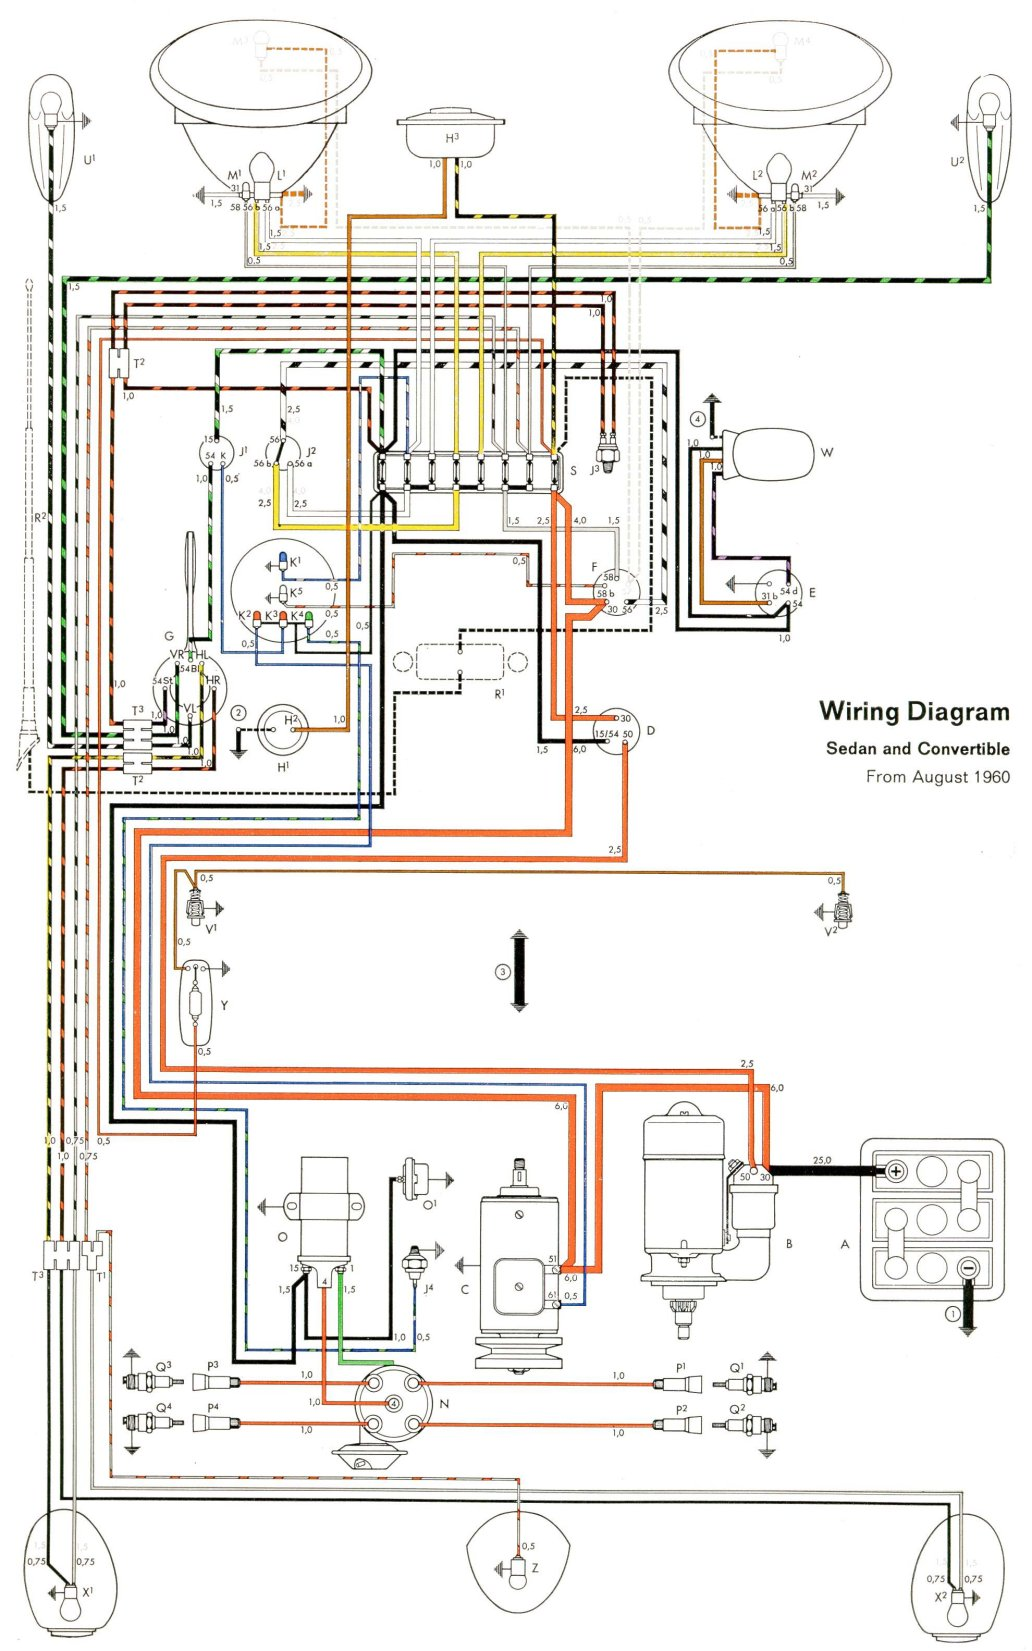 thesamba com type 1 wiring diagrams rh thesamba com  69 volkswagen beetle wiring diagram